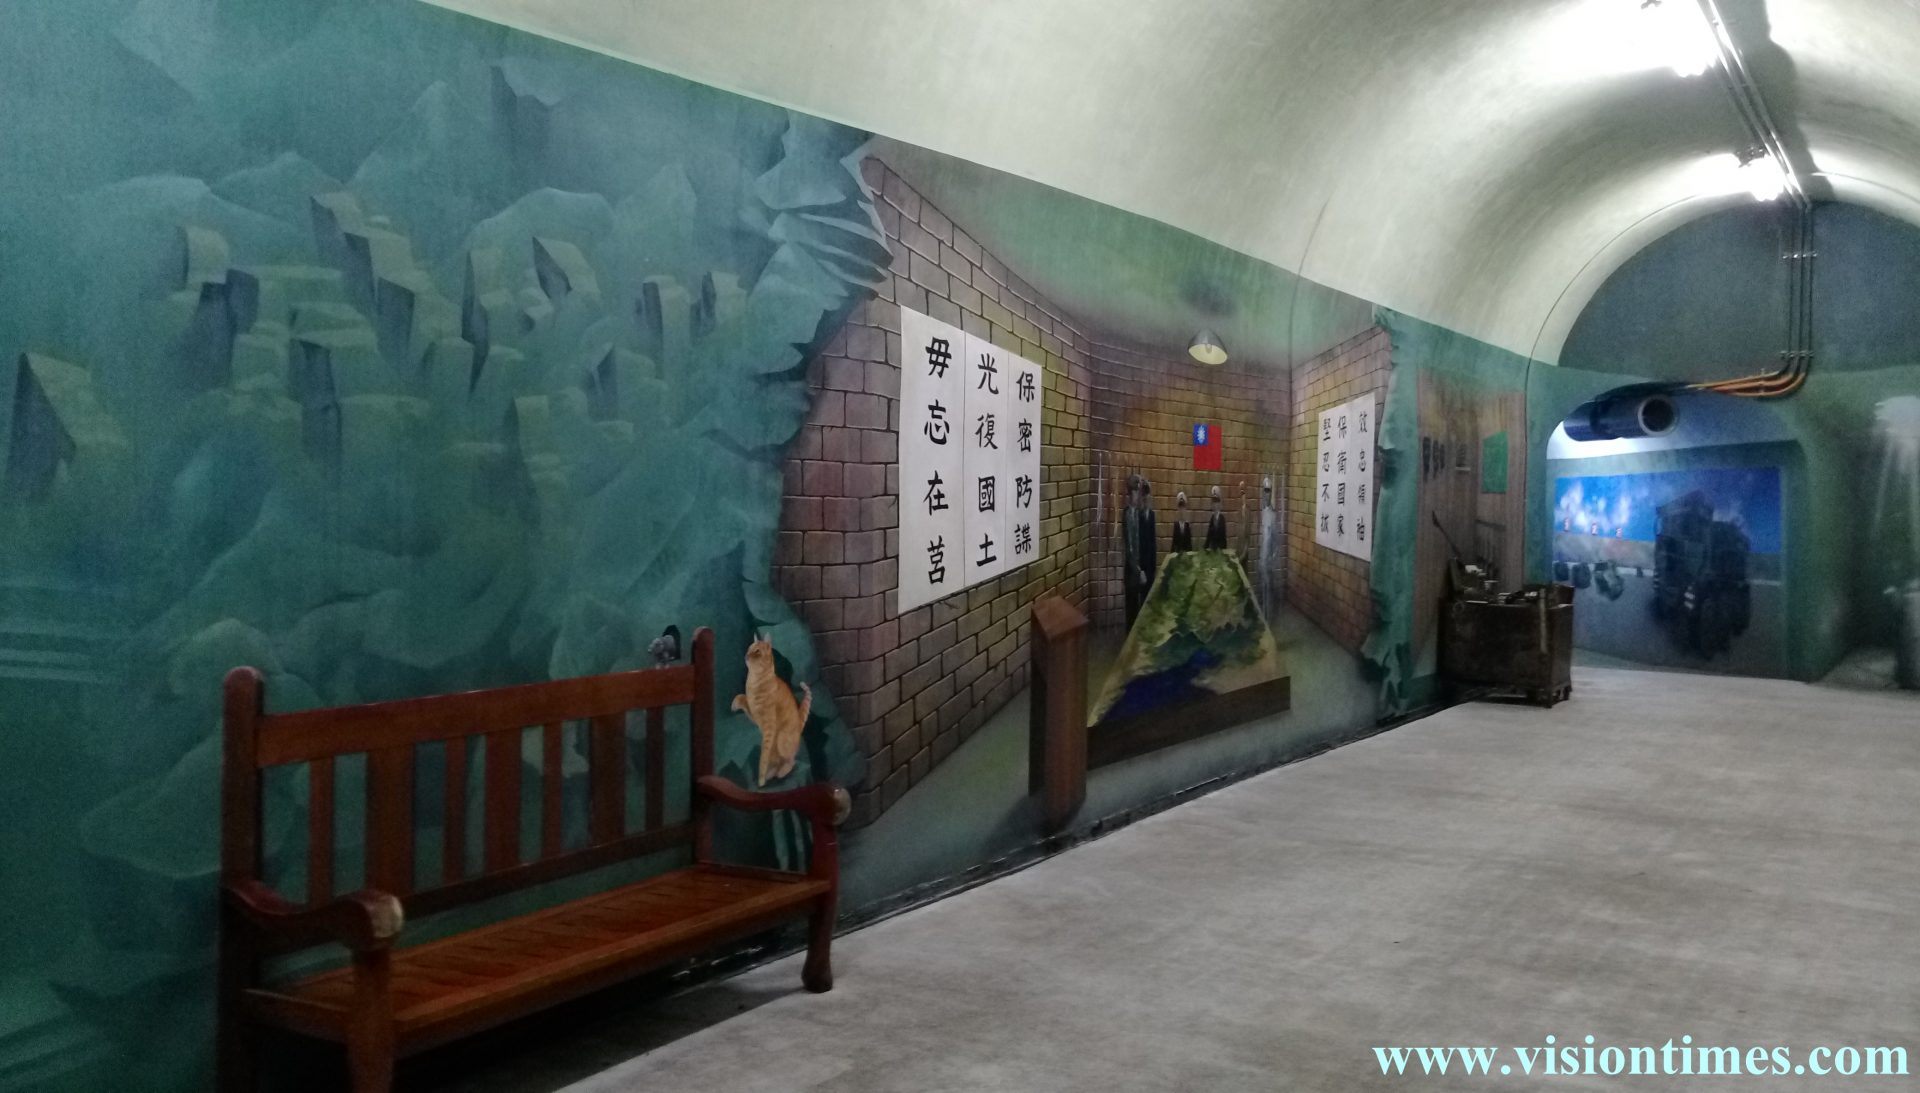 Part of the mural in the military tunnel at the Jiabanshan Guesthouse. (Image: Billy Shyu / Vision Times)